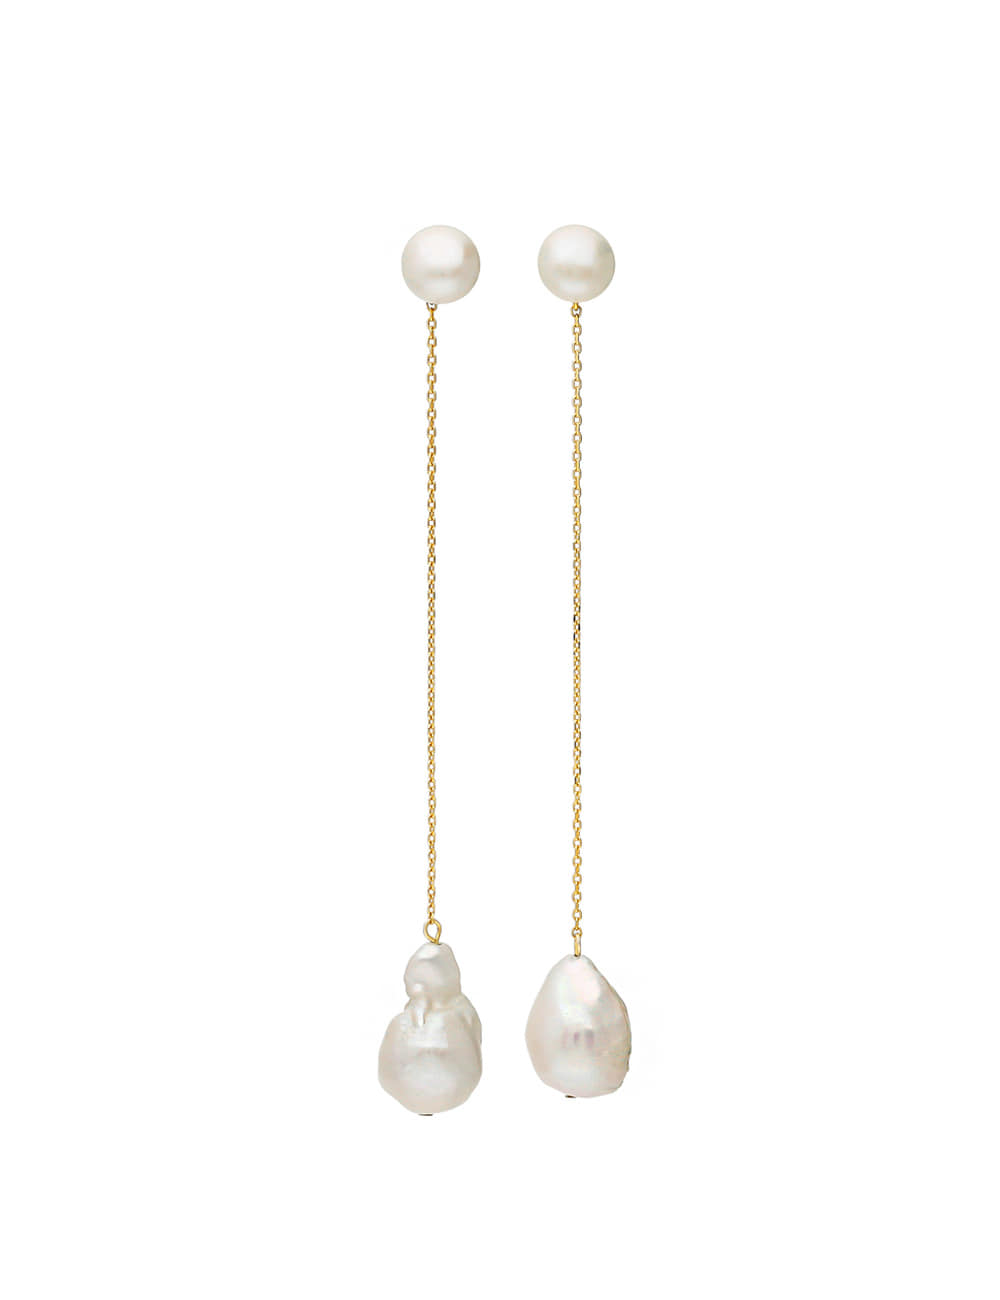 925 Silver Mood Nature Pearl Dropped Earrings _ 담수진주 드롭귀걸이 라비쉬에